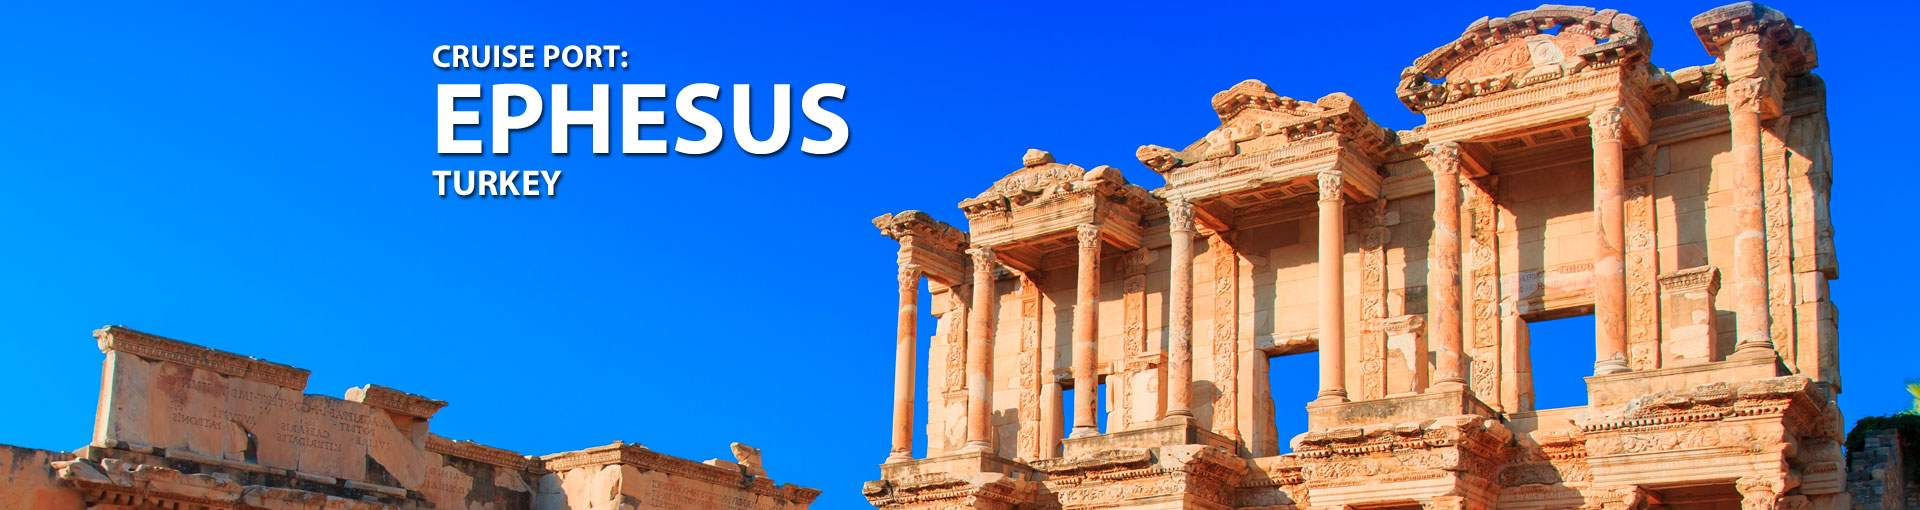 Cruises to Ephesus, Turkey